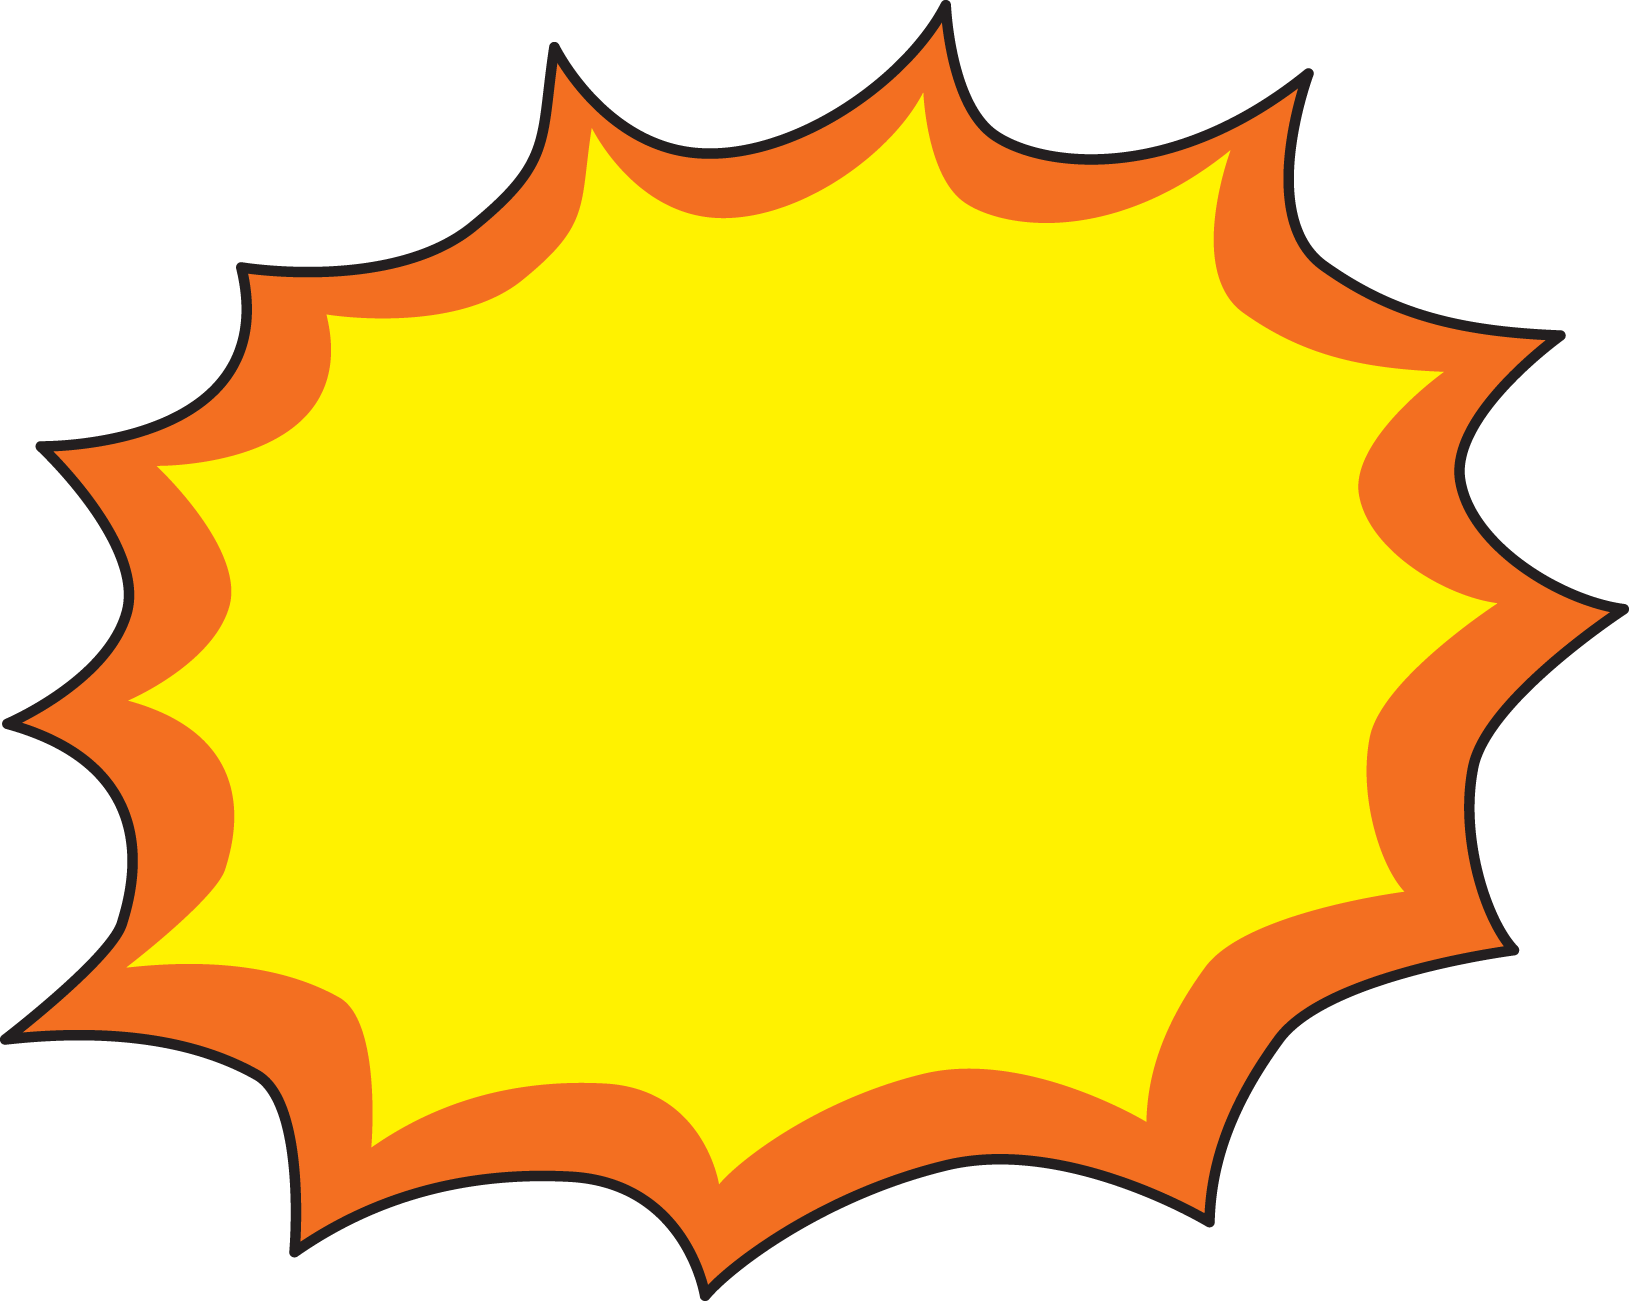 Waves clipart tide. Explosion star shape explosions